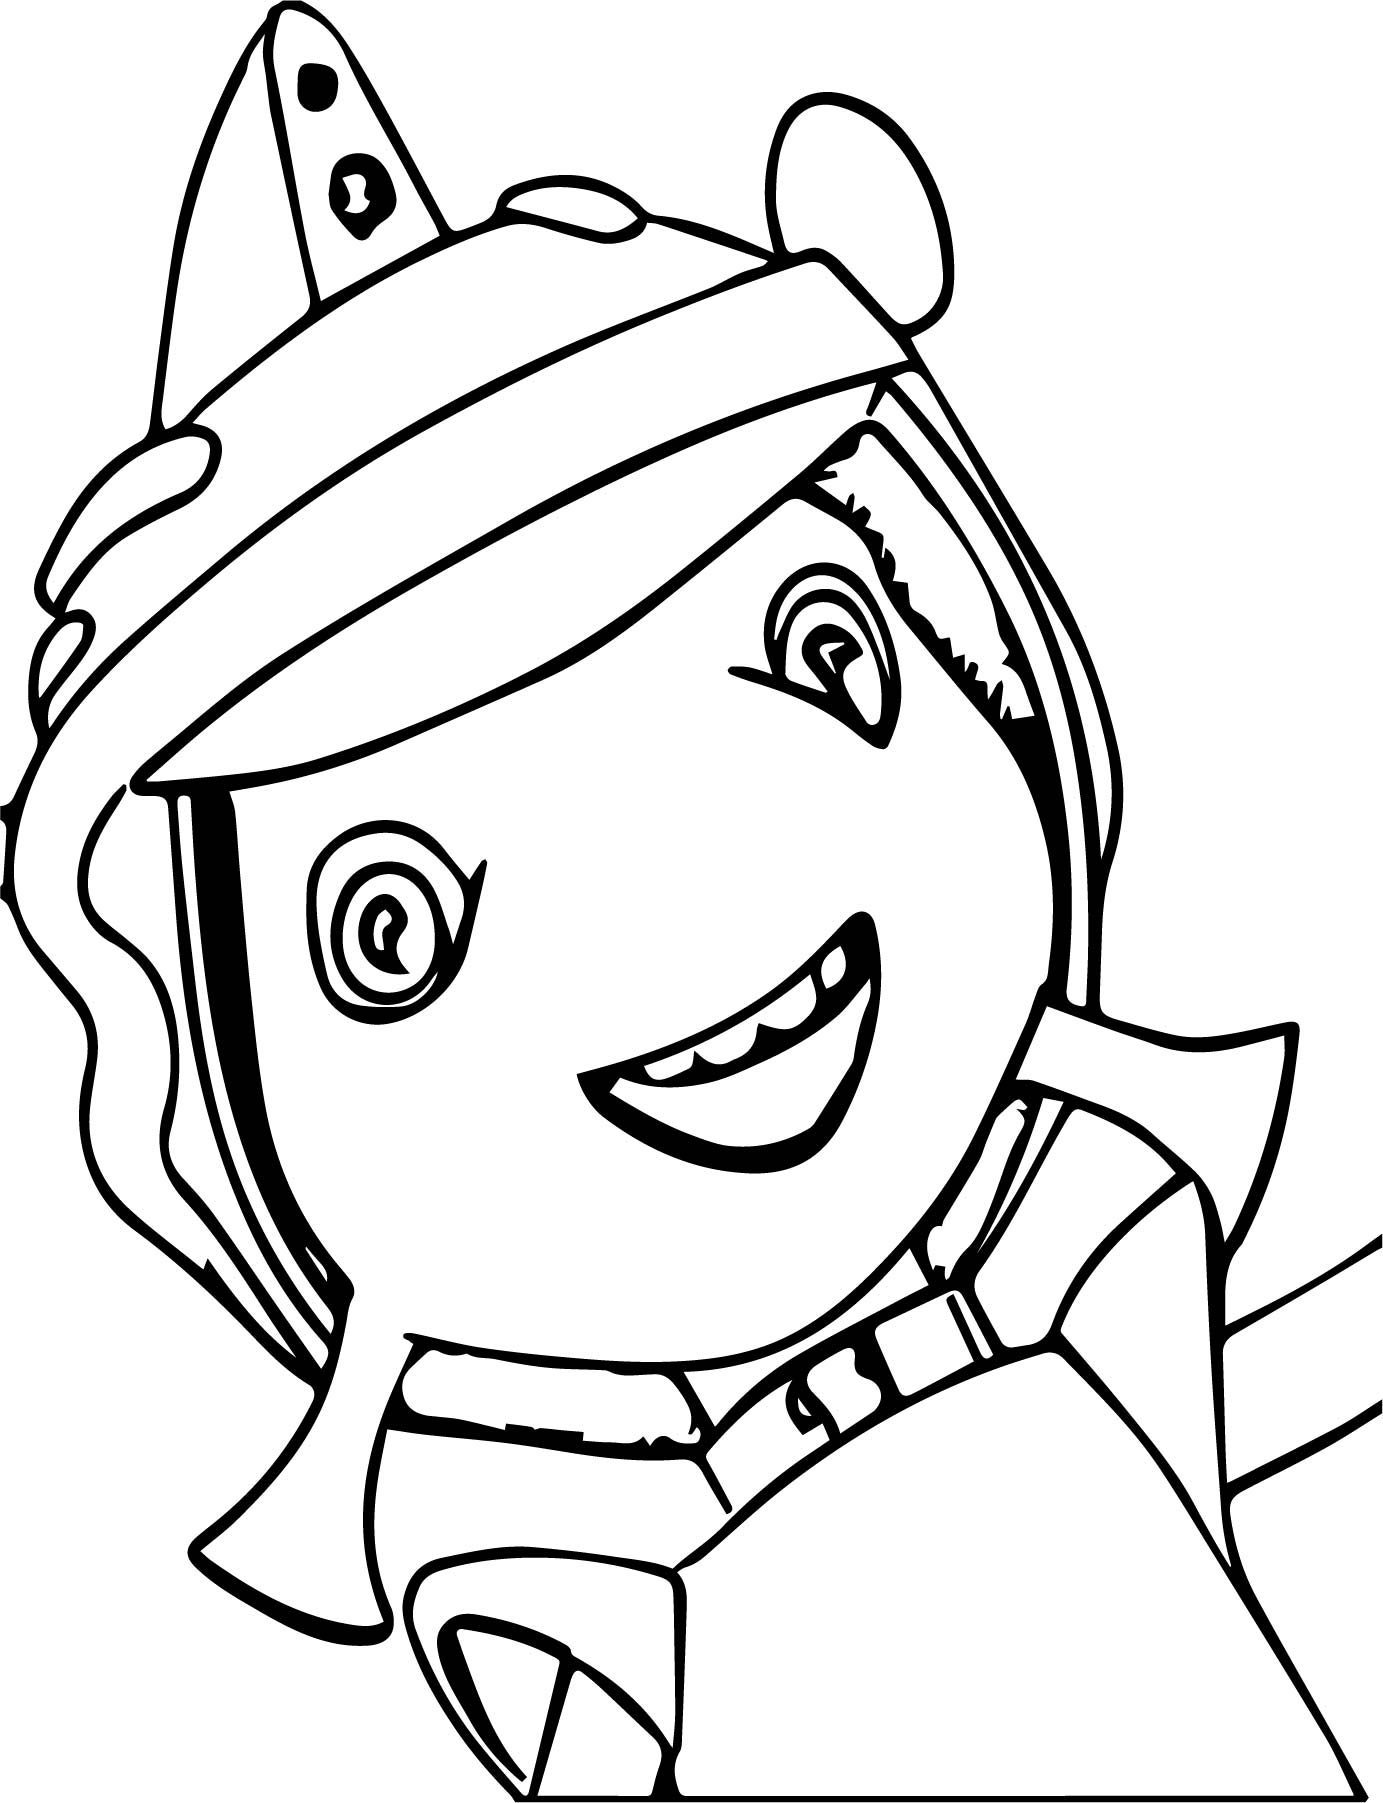 Floogals Character Coloring Page